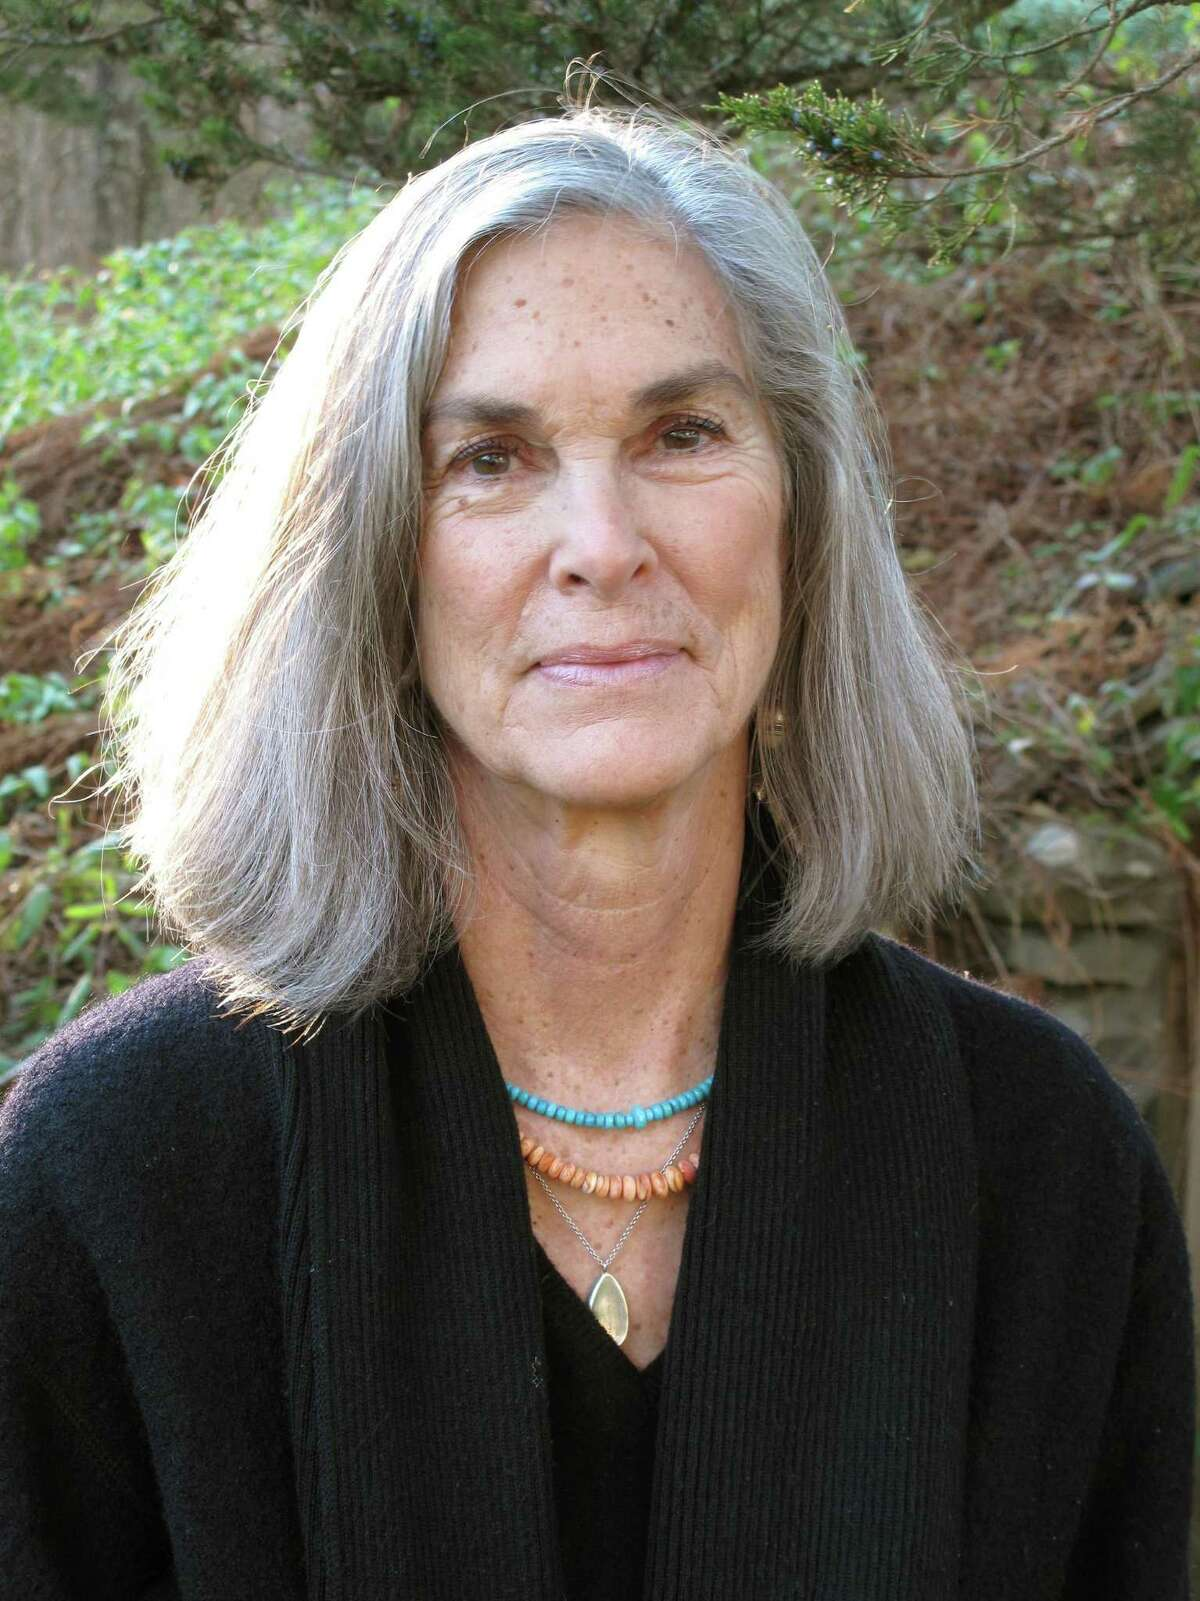 """POET IN GUILFORD: Guilford Poets Guild will welcome newly named Connecticut Poet Laureate Margaret Gibson for its Second Thursday reading on Thursday, April 11, frrom 6:30-8:30 p.m. at the Guilford Free Library. Gibson, a featured poet at the popular 2018 Sunken Garden Poetry Festival in Farmington, is the author of 13 books of poetry and prose, including """"Not Hearing the Wood Thrush"""" and """"Broken Cup."""""""